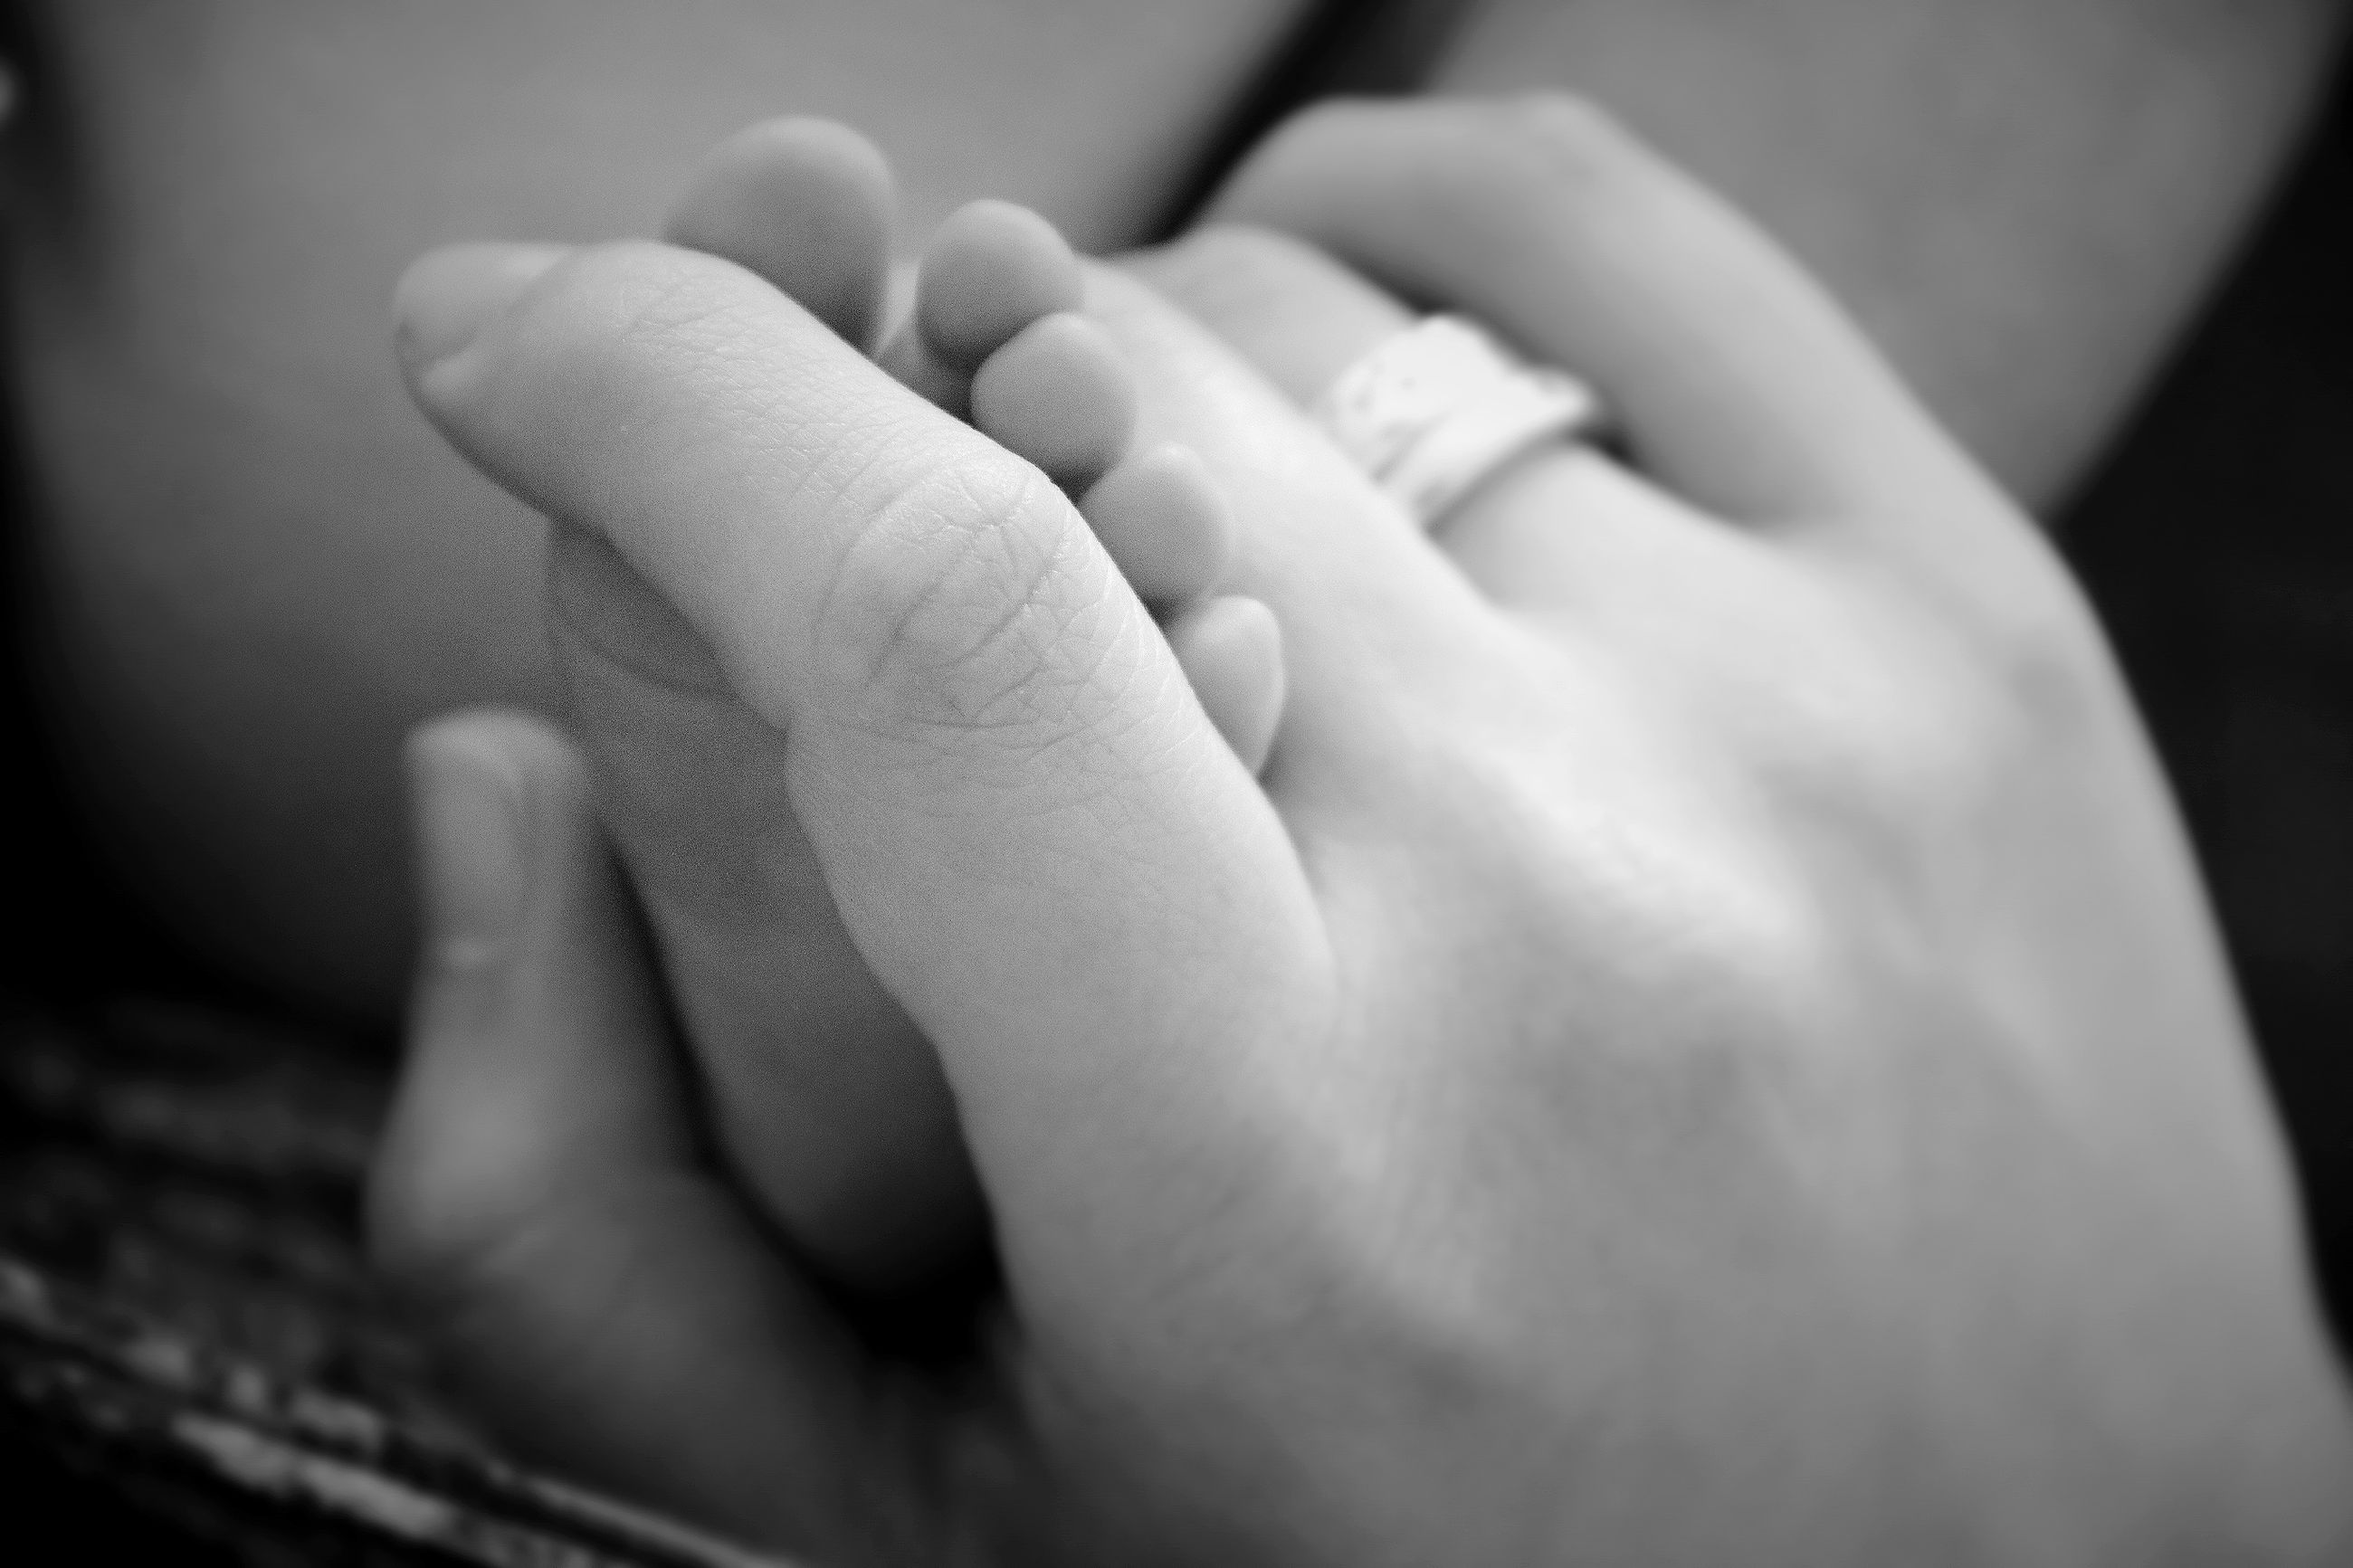 person, indoors, part of, human finger, lifestyles, close-up, baby, cropped, love, holding, unknown gender, togetherness, bonding, barefoot, holding hands